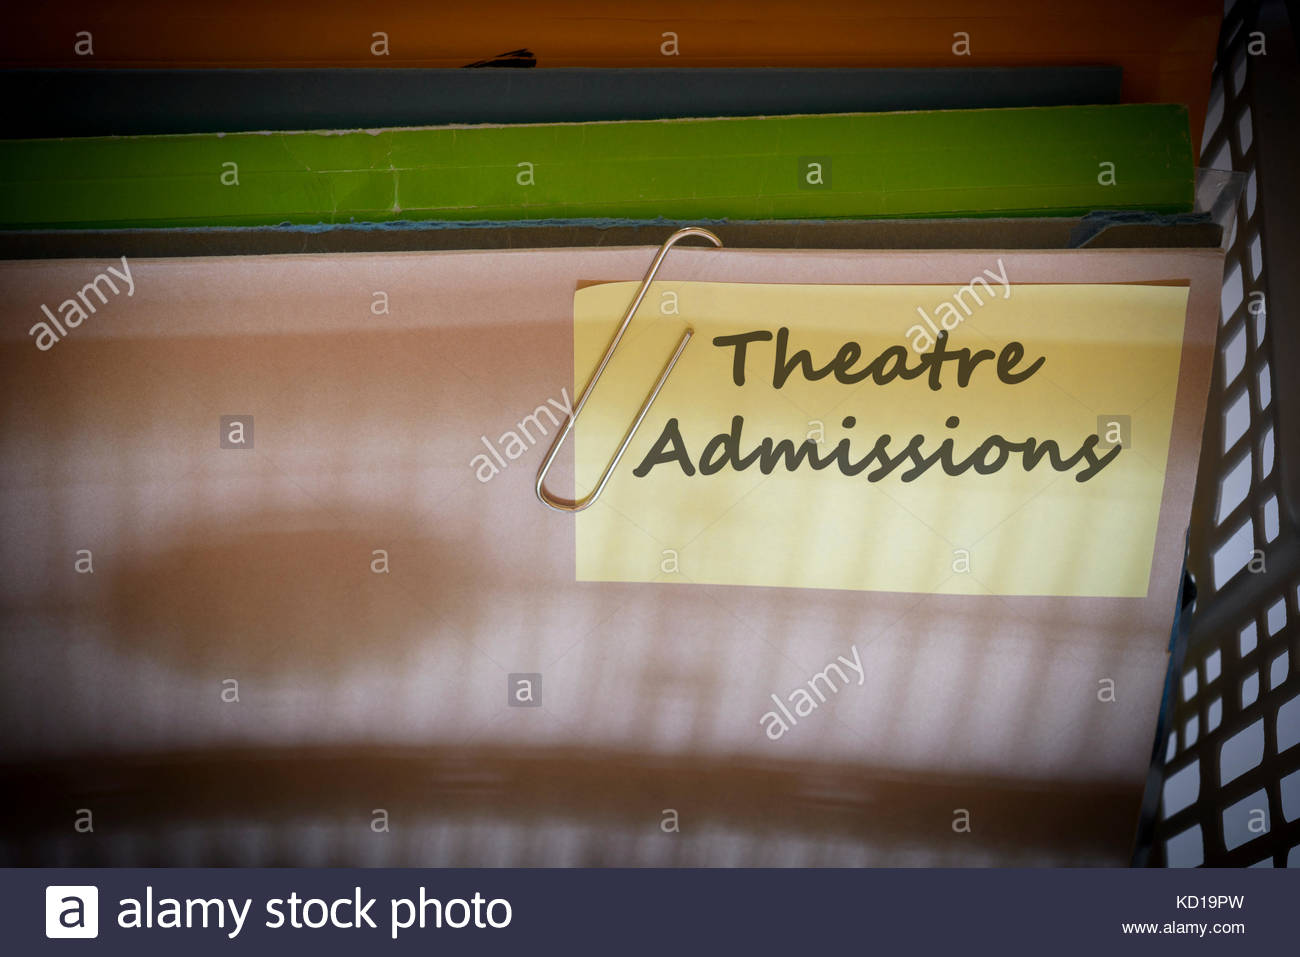 Theatre Admissions written on document folder, Dorset, England. - Stock Image